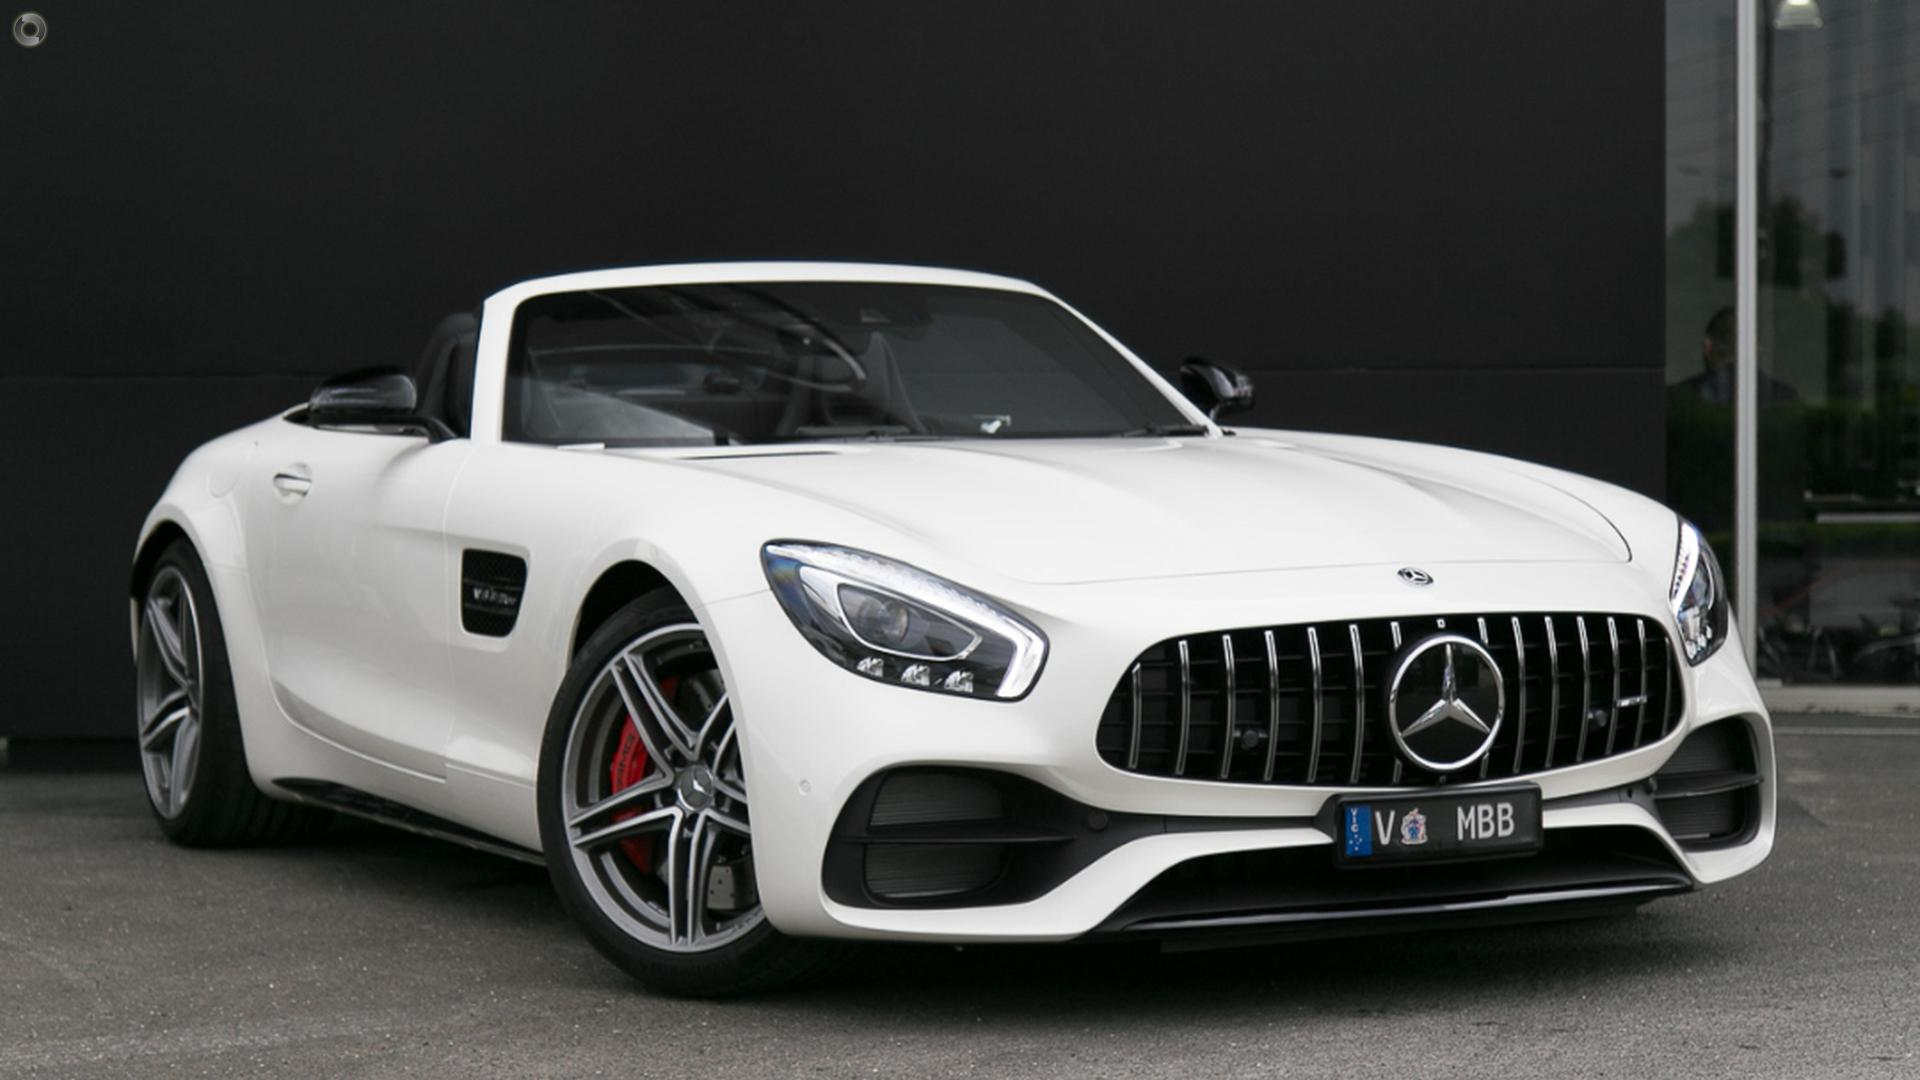 2017 Mercedes-Benz AMG GT Roadster